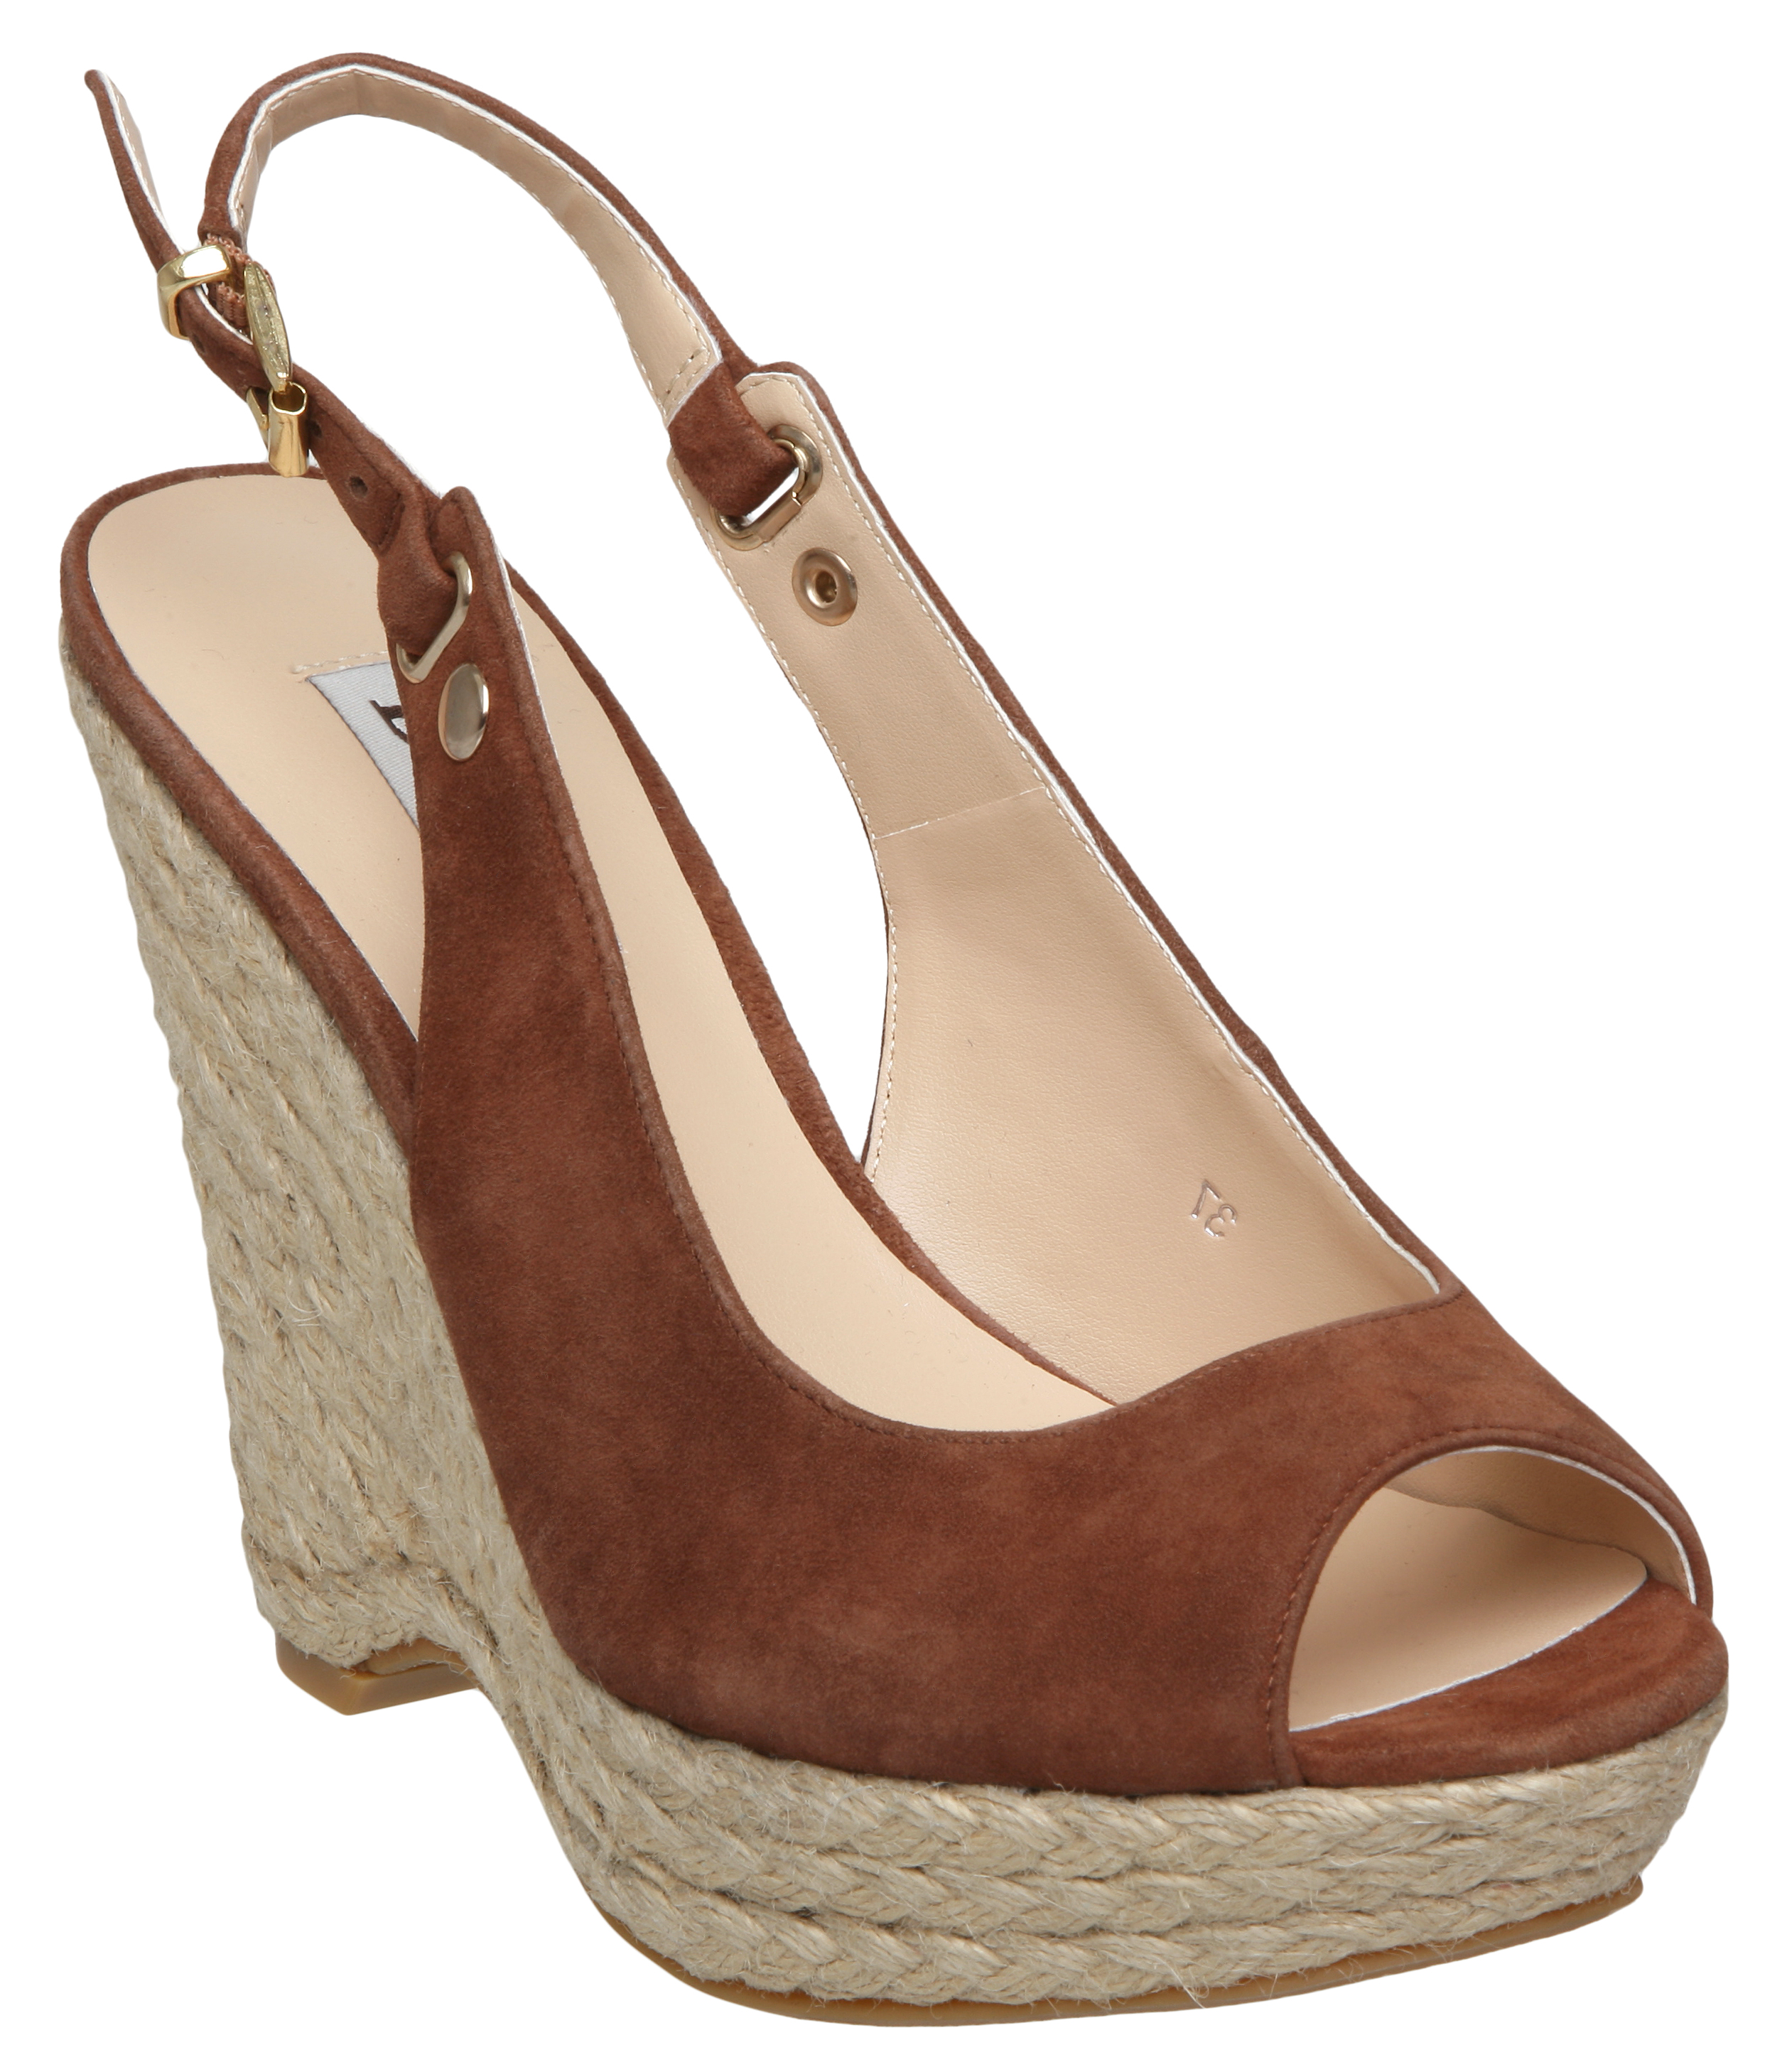 new dune giddy womens wedge platform heel slingback